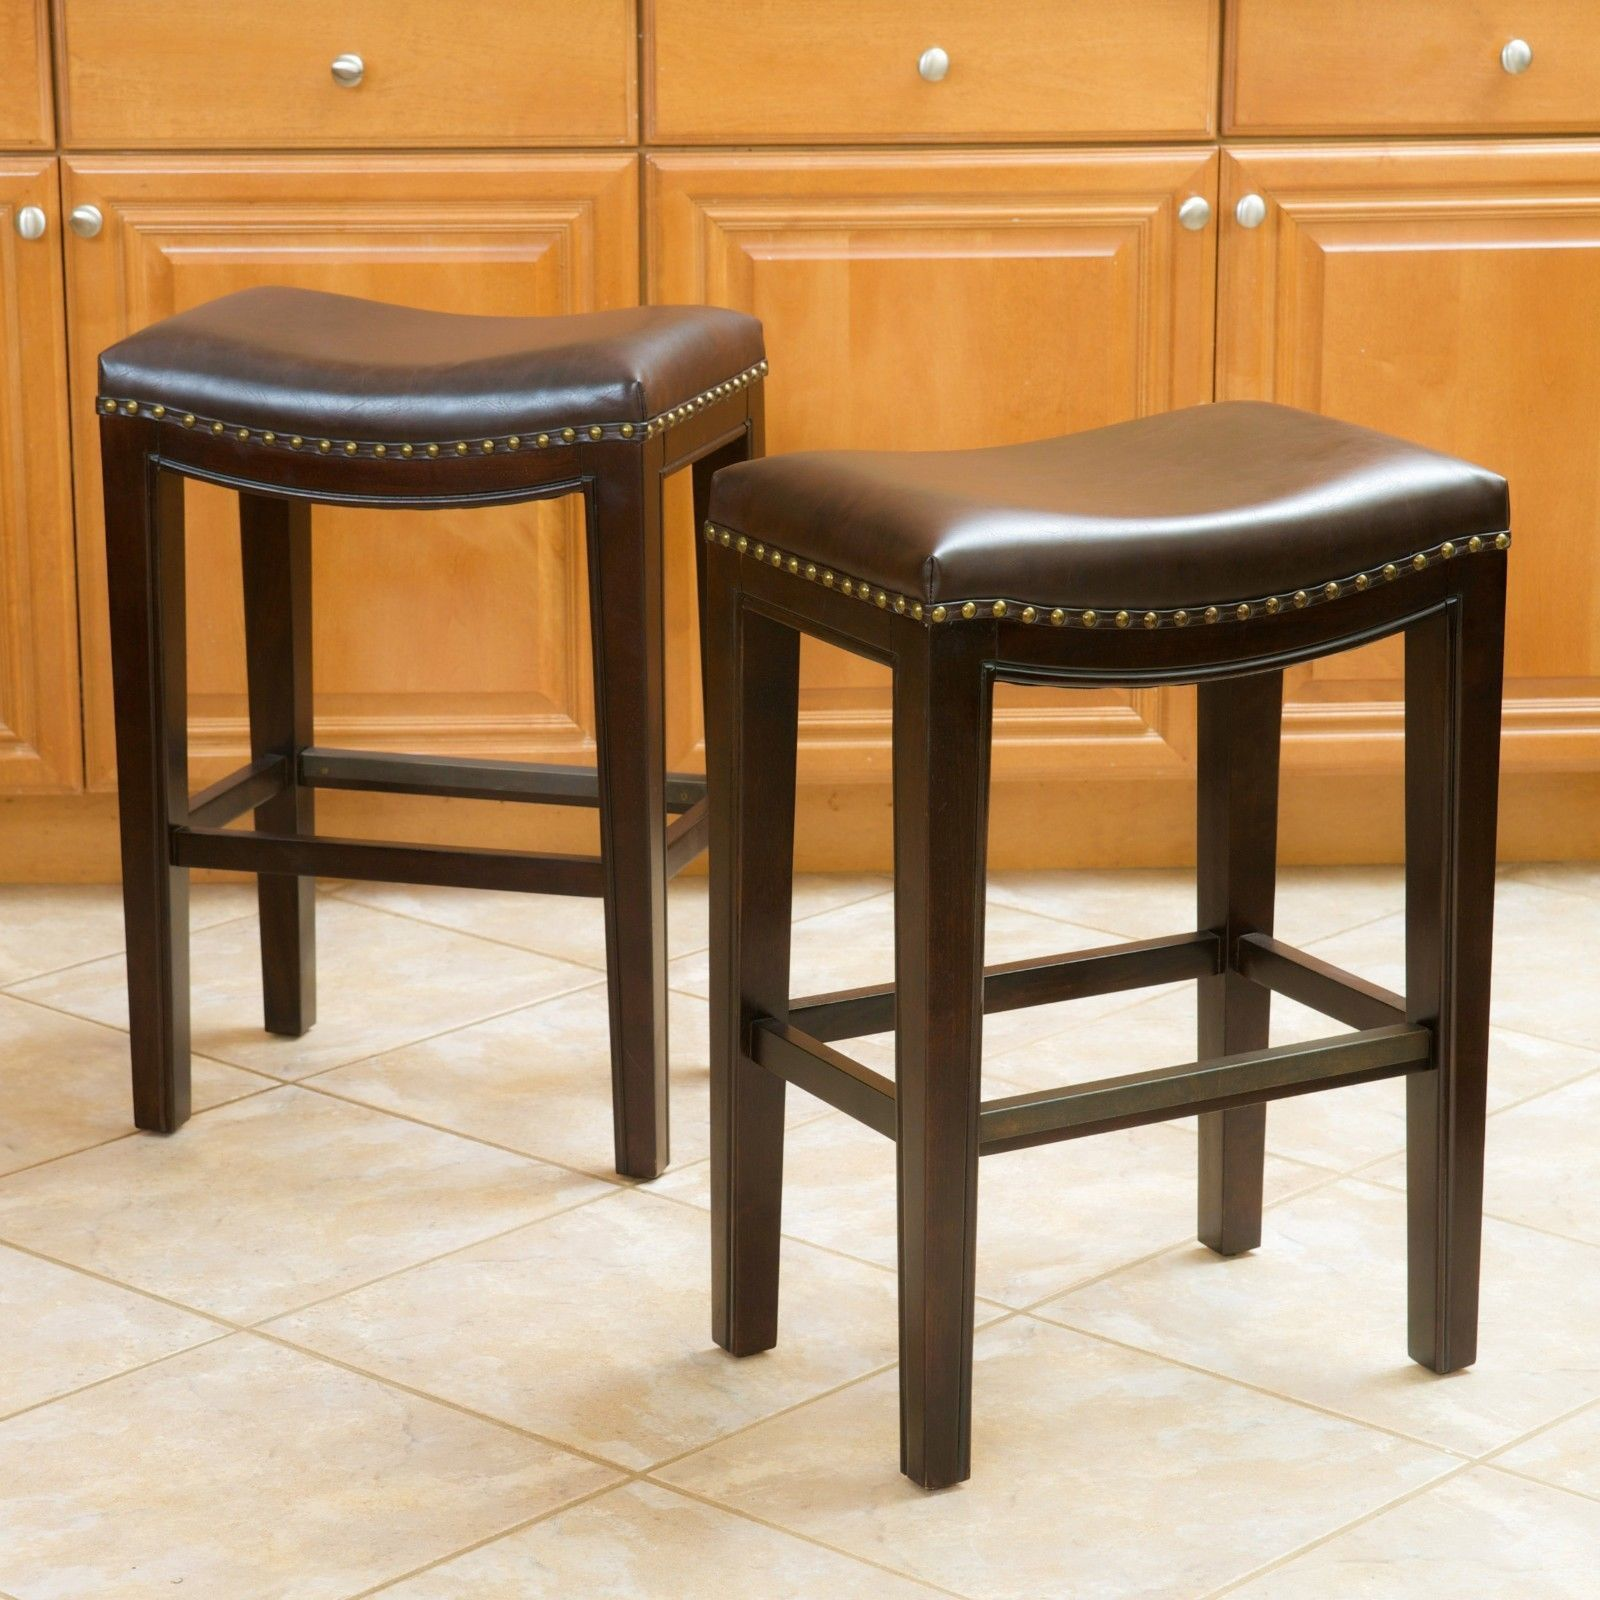 Brown 26 Inch Leather Backless Counter Stools W Nailhead Accent (Set